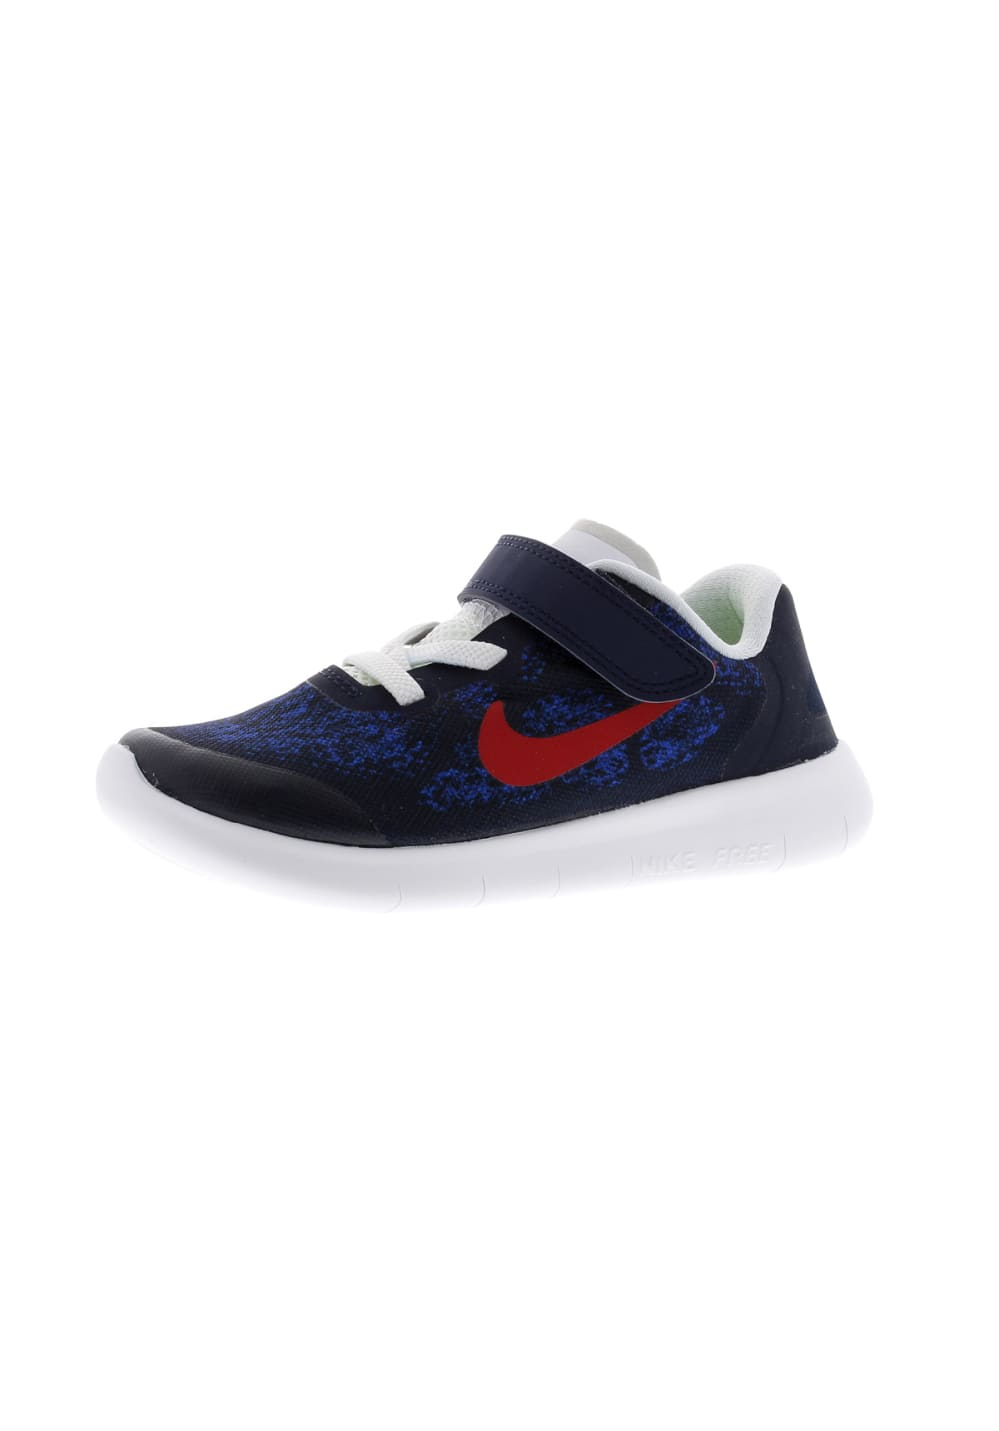 db0c5d503c884 Nike Free RN 2017 Toddler Shoe - Running shoes - Blue